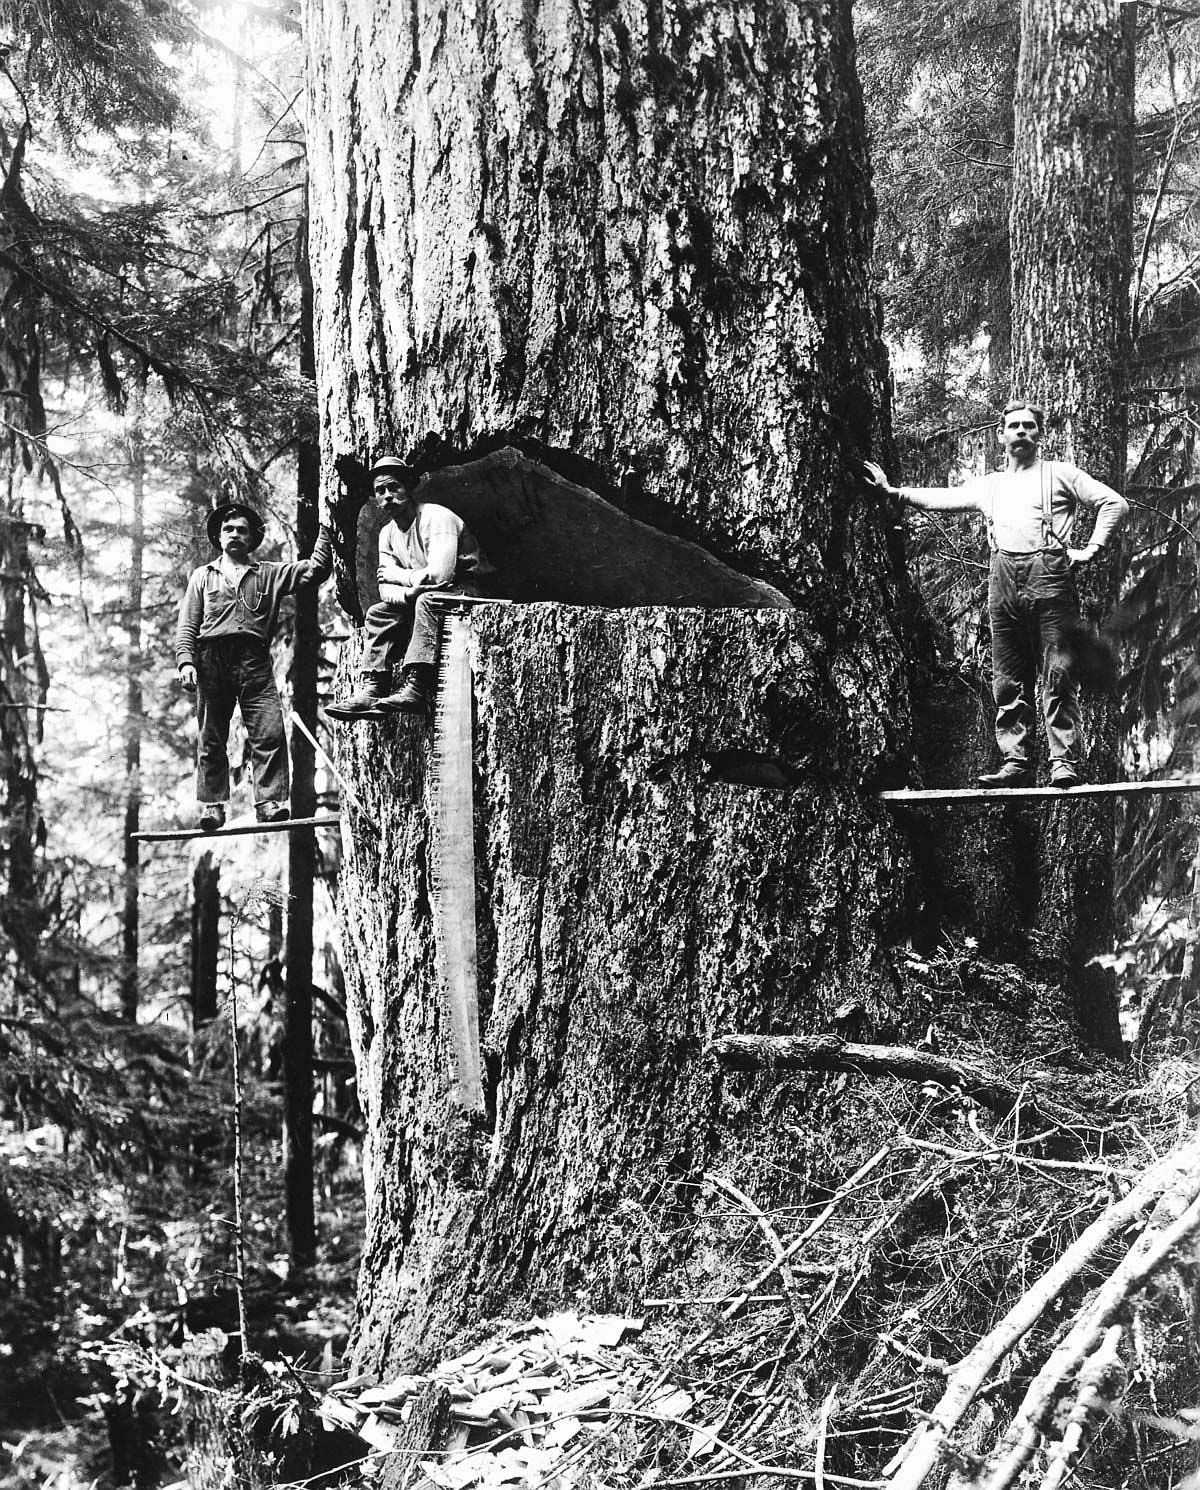 1918  Three lumberjacks pose by a large Douglas fir ready for felling in Oregon.  Image: Corbis